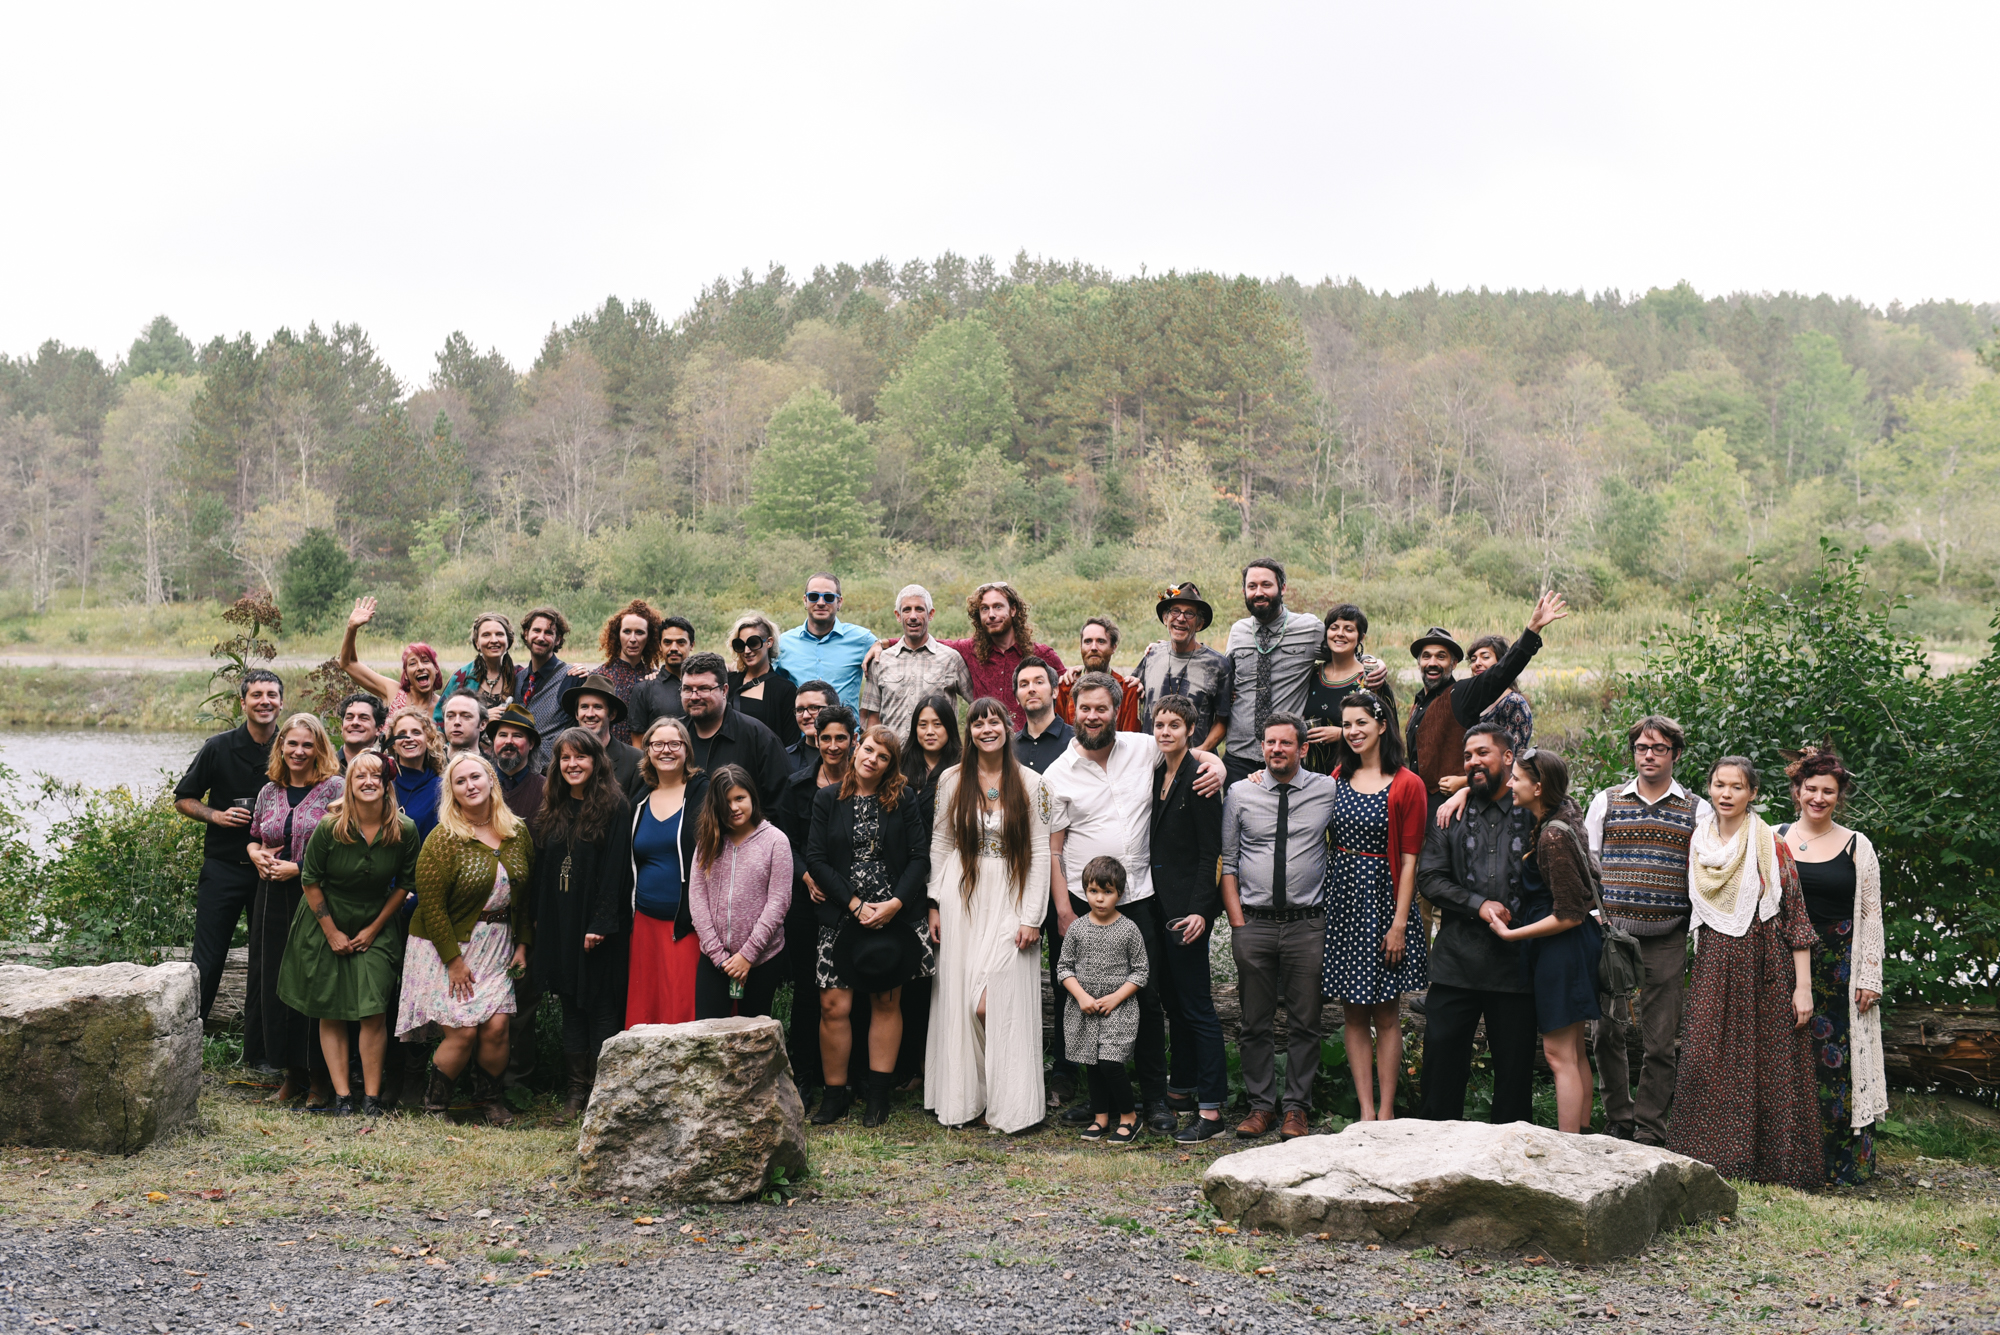 Mountain Wedding, Outdoors, Rustic, West Virginia, Maryland Wedding Photographer, DIY, Casual, group photo of bride and wedding guests